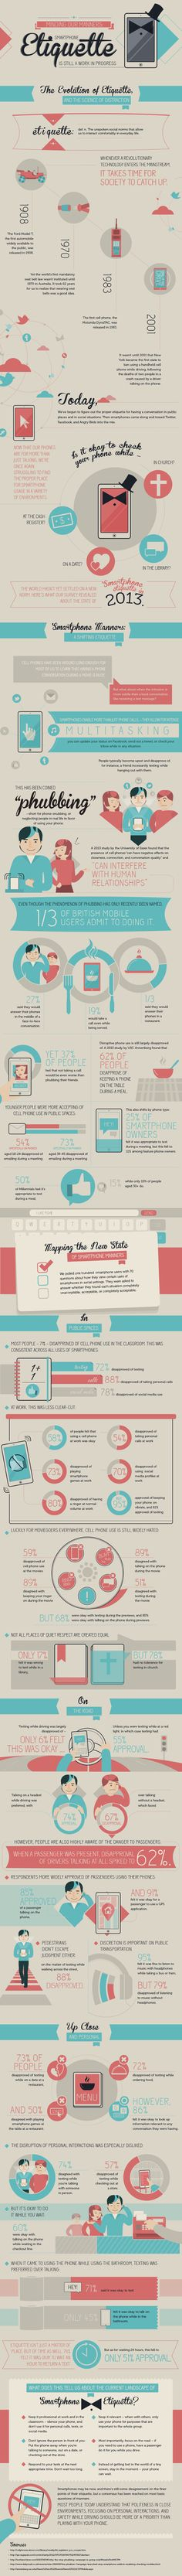 The Evolution of Mobile Etiquette [INFOGRAPHIC]